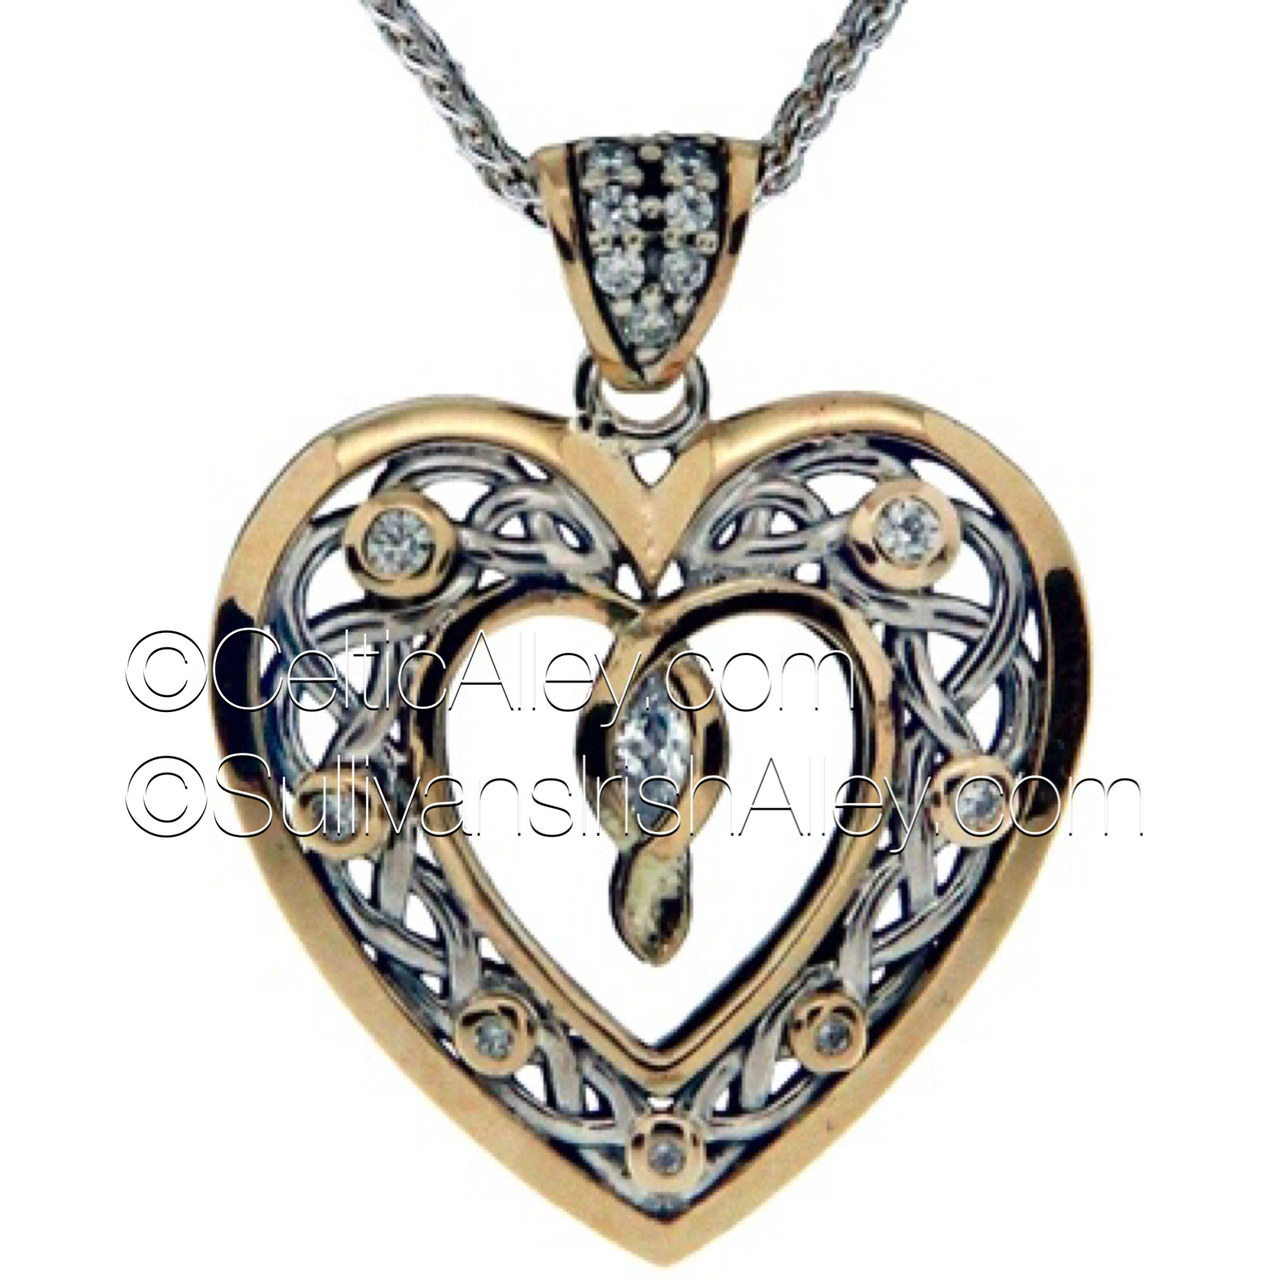 Keith jacks new sterling silver with 10k yellow gold cubic zirconia keith jacks new sterling silver with 10k yellow gold cubic zirconia stone set heart pendant ppx9165 aloadofball Gallery